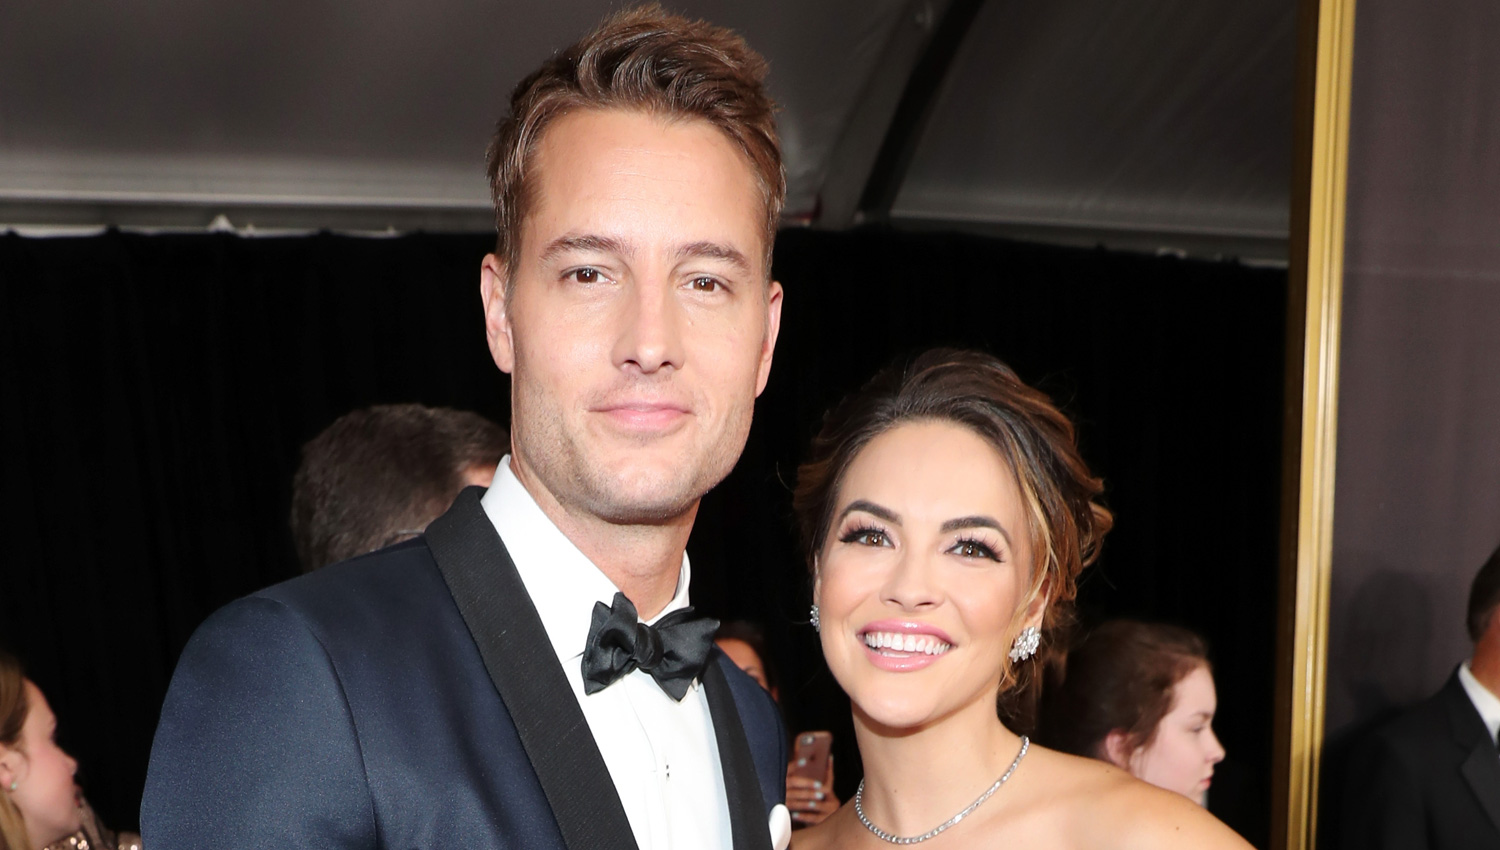 This Is Us 8217 Justin Hartley Is Married To Chrishell Stause